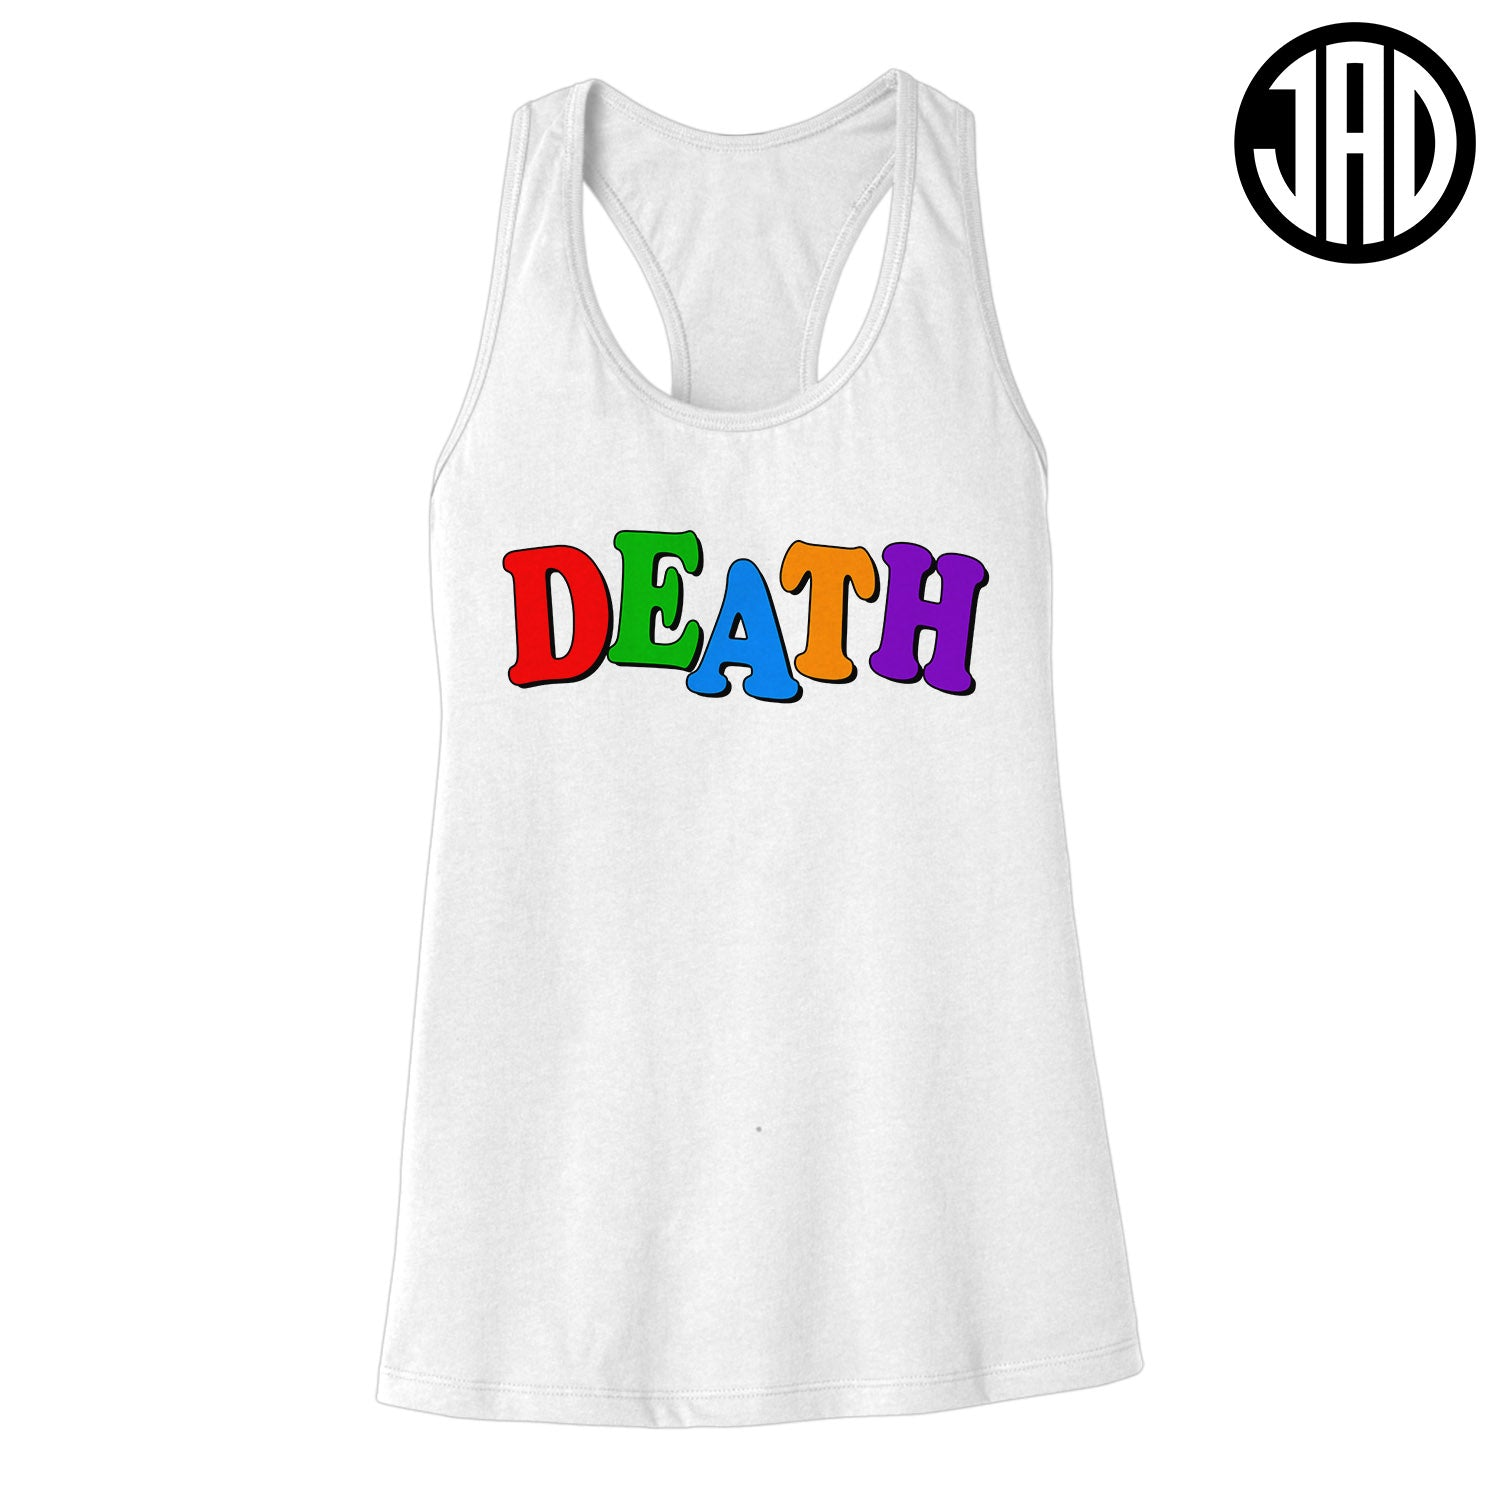 Death School - Women's Racerback Tank